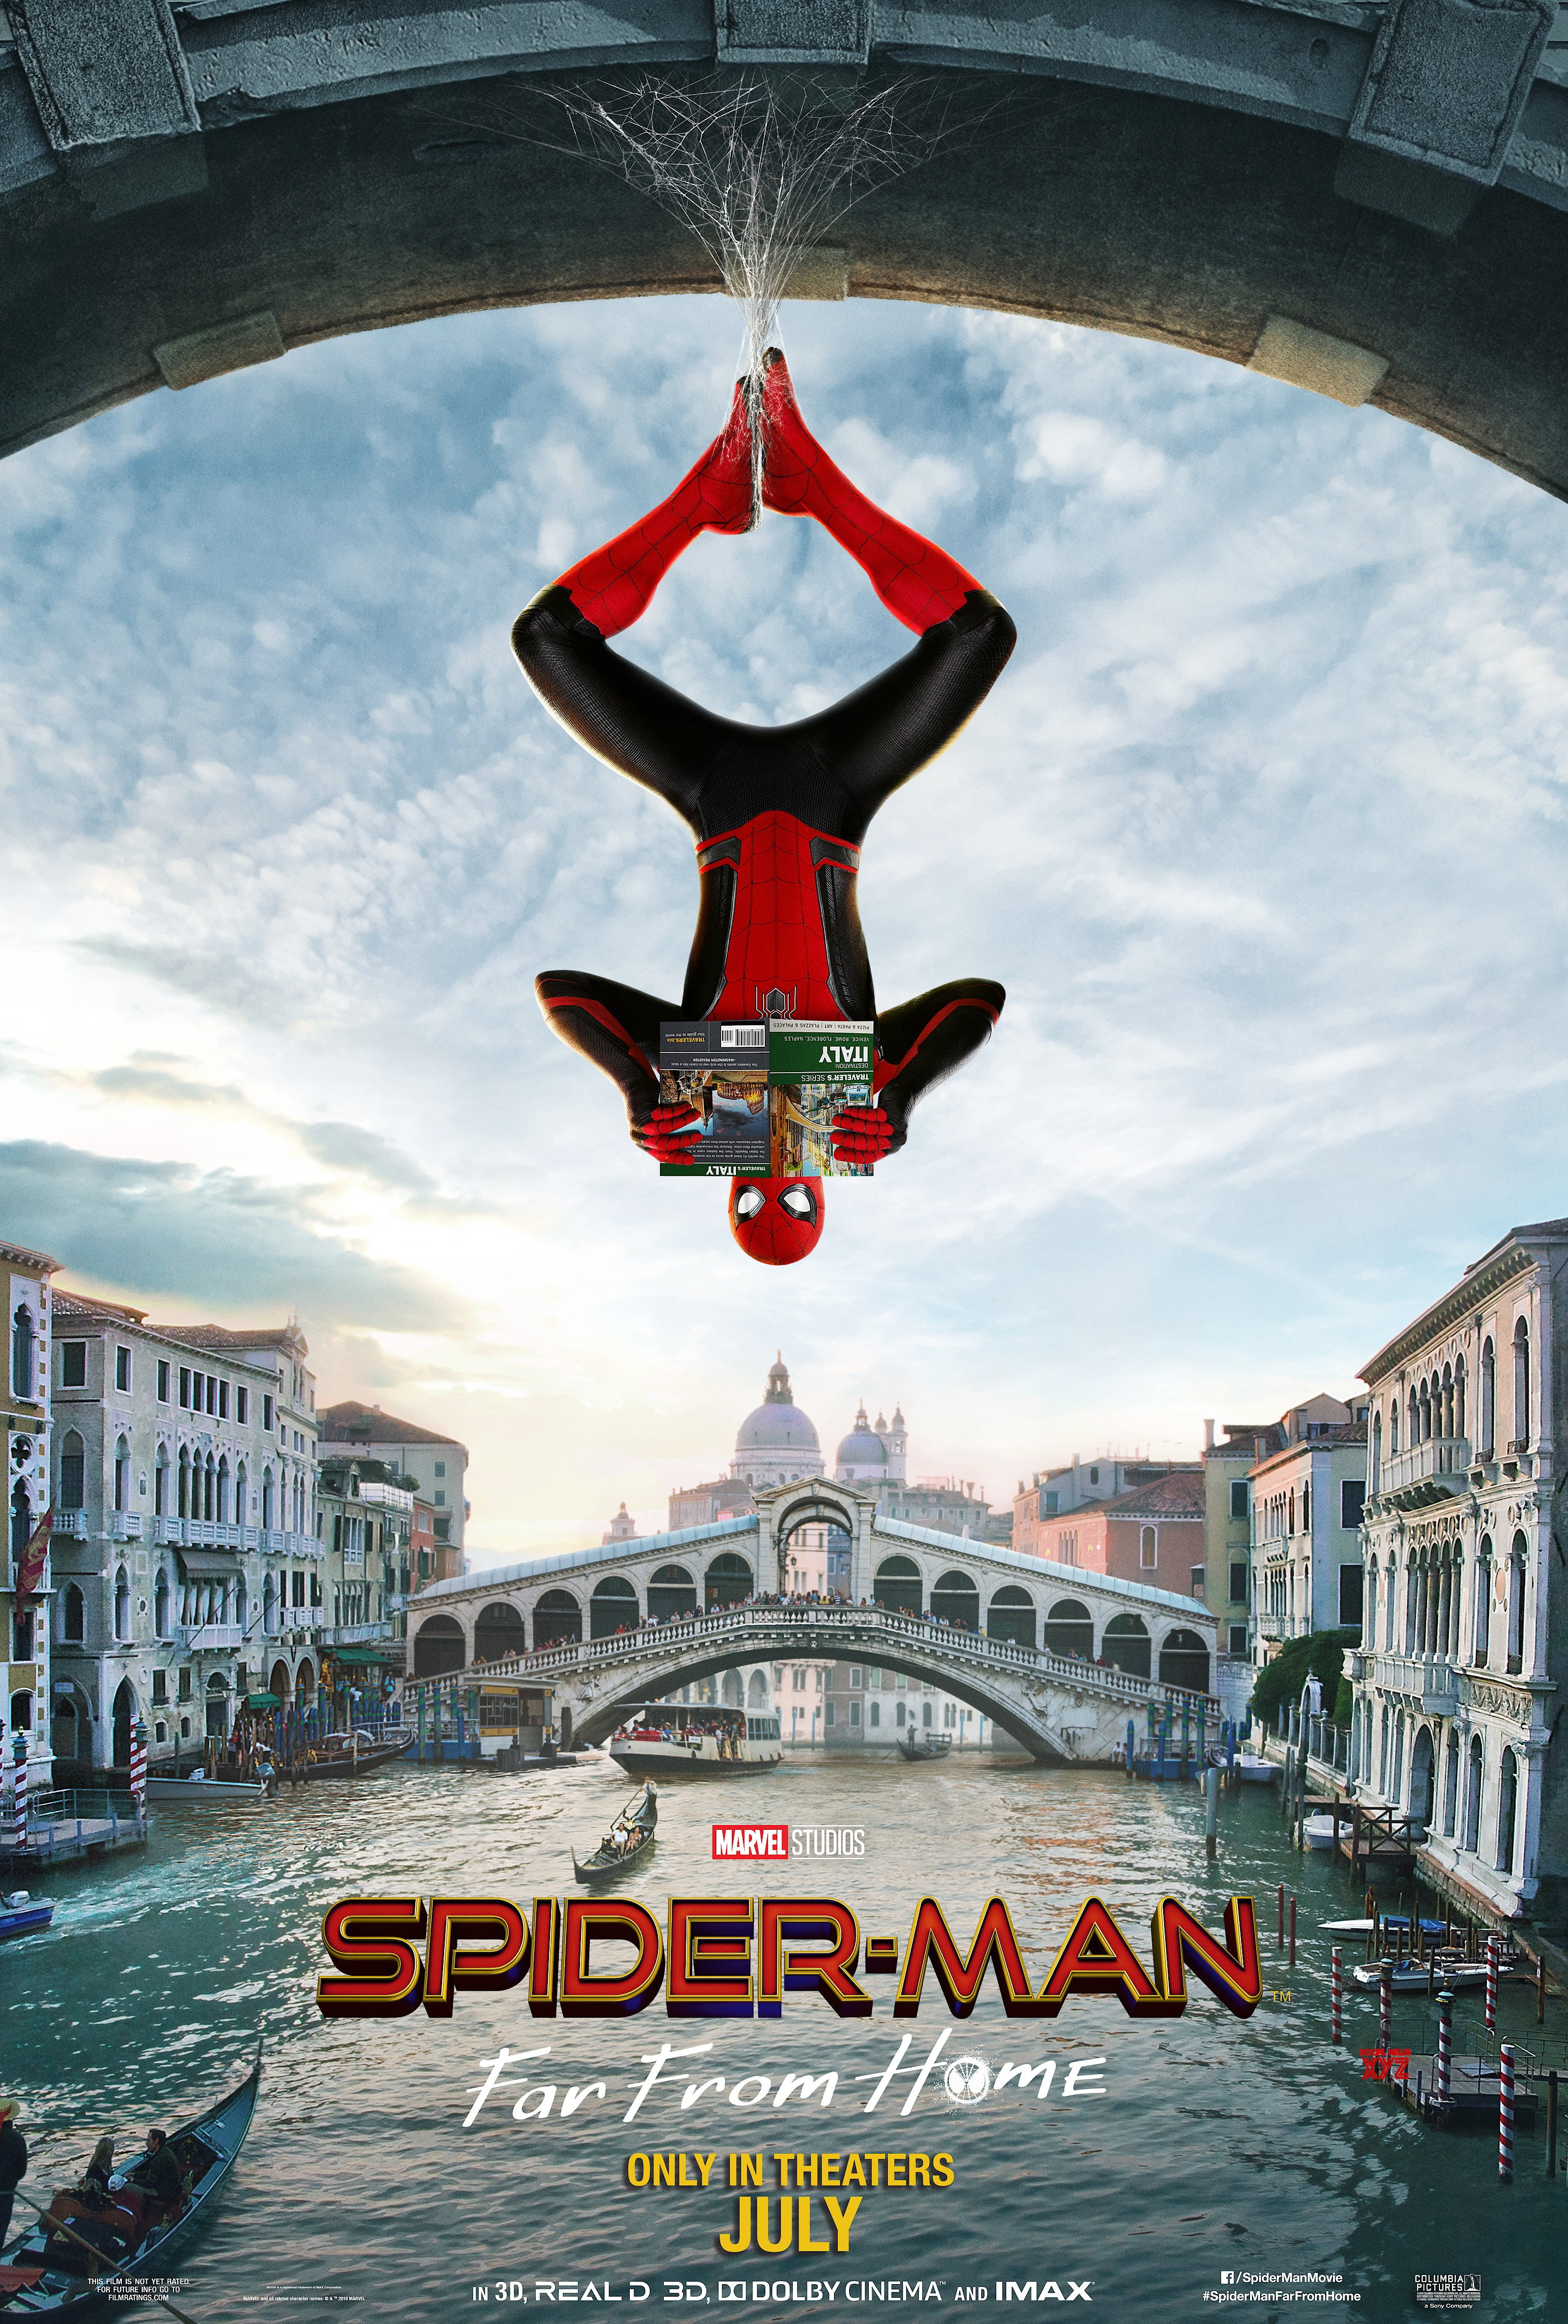 SPIDER-MAN: Far From Home Movie Super HD Posters